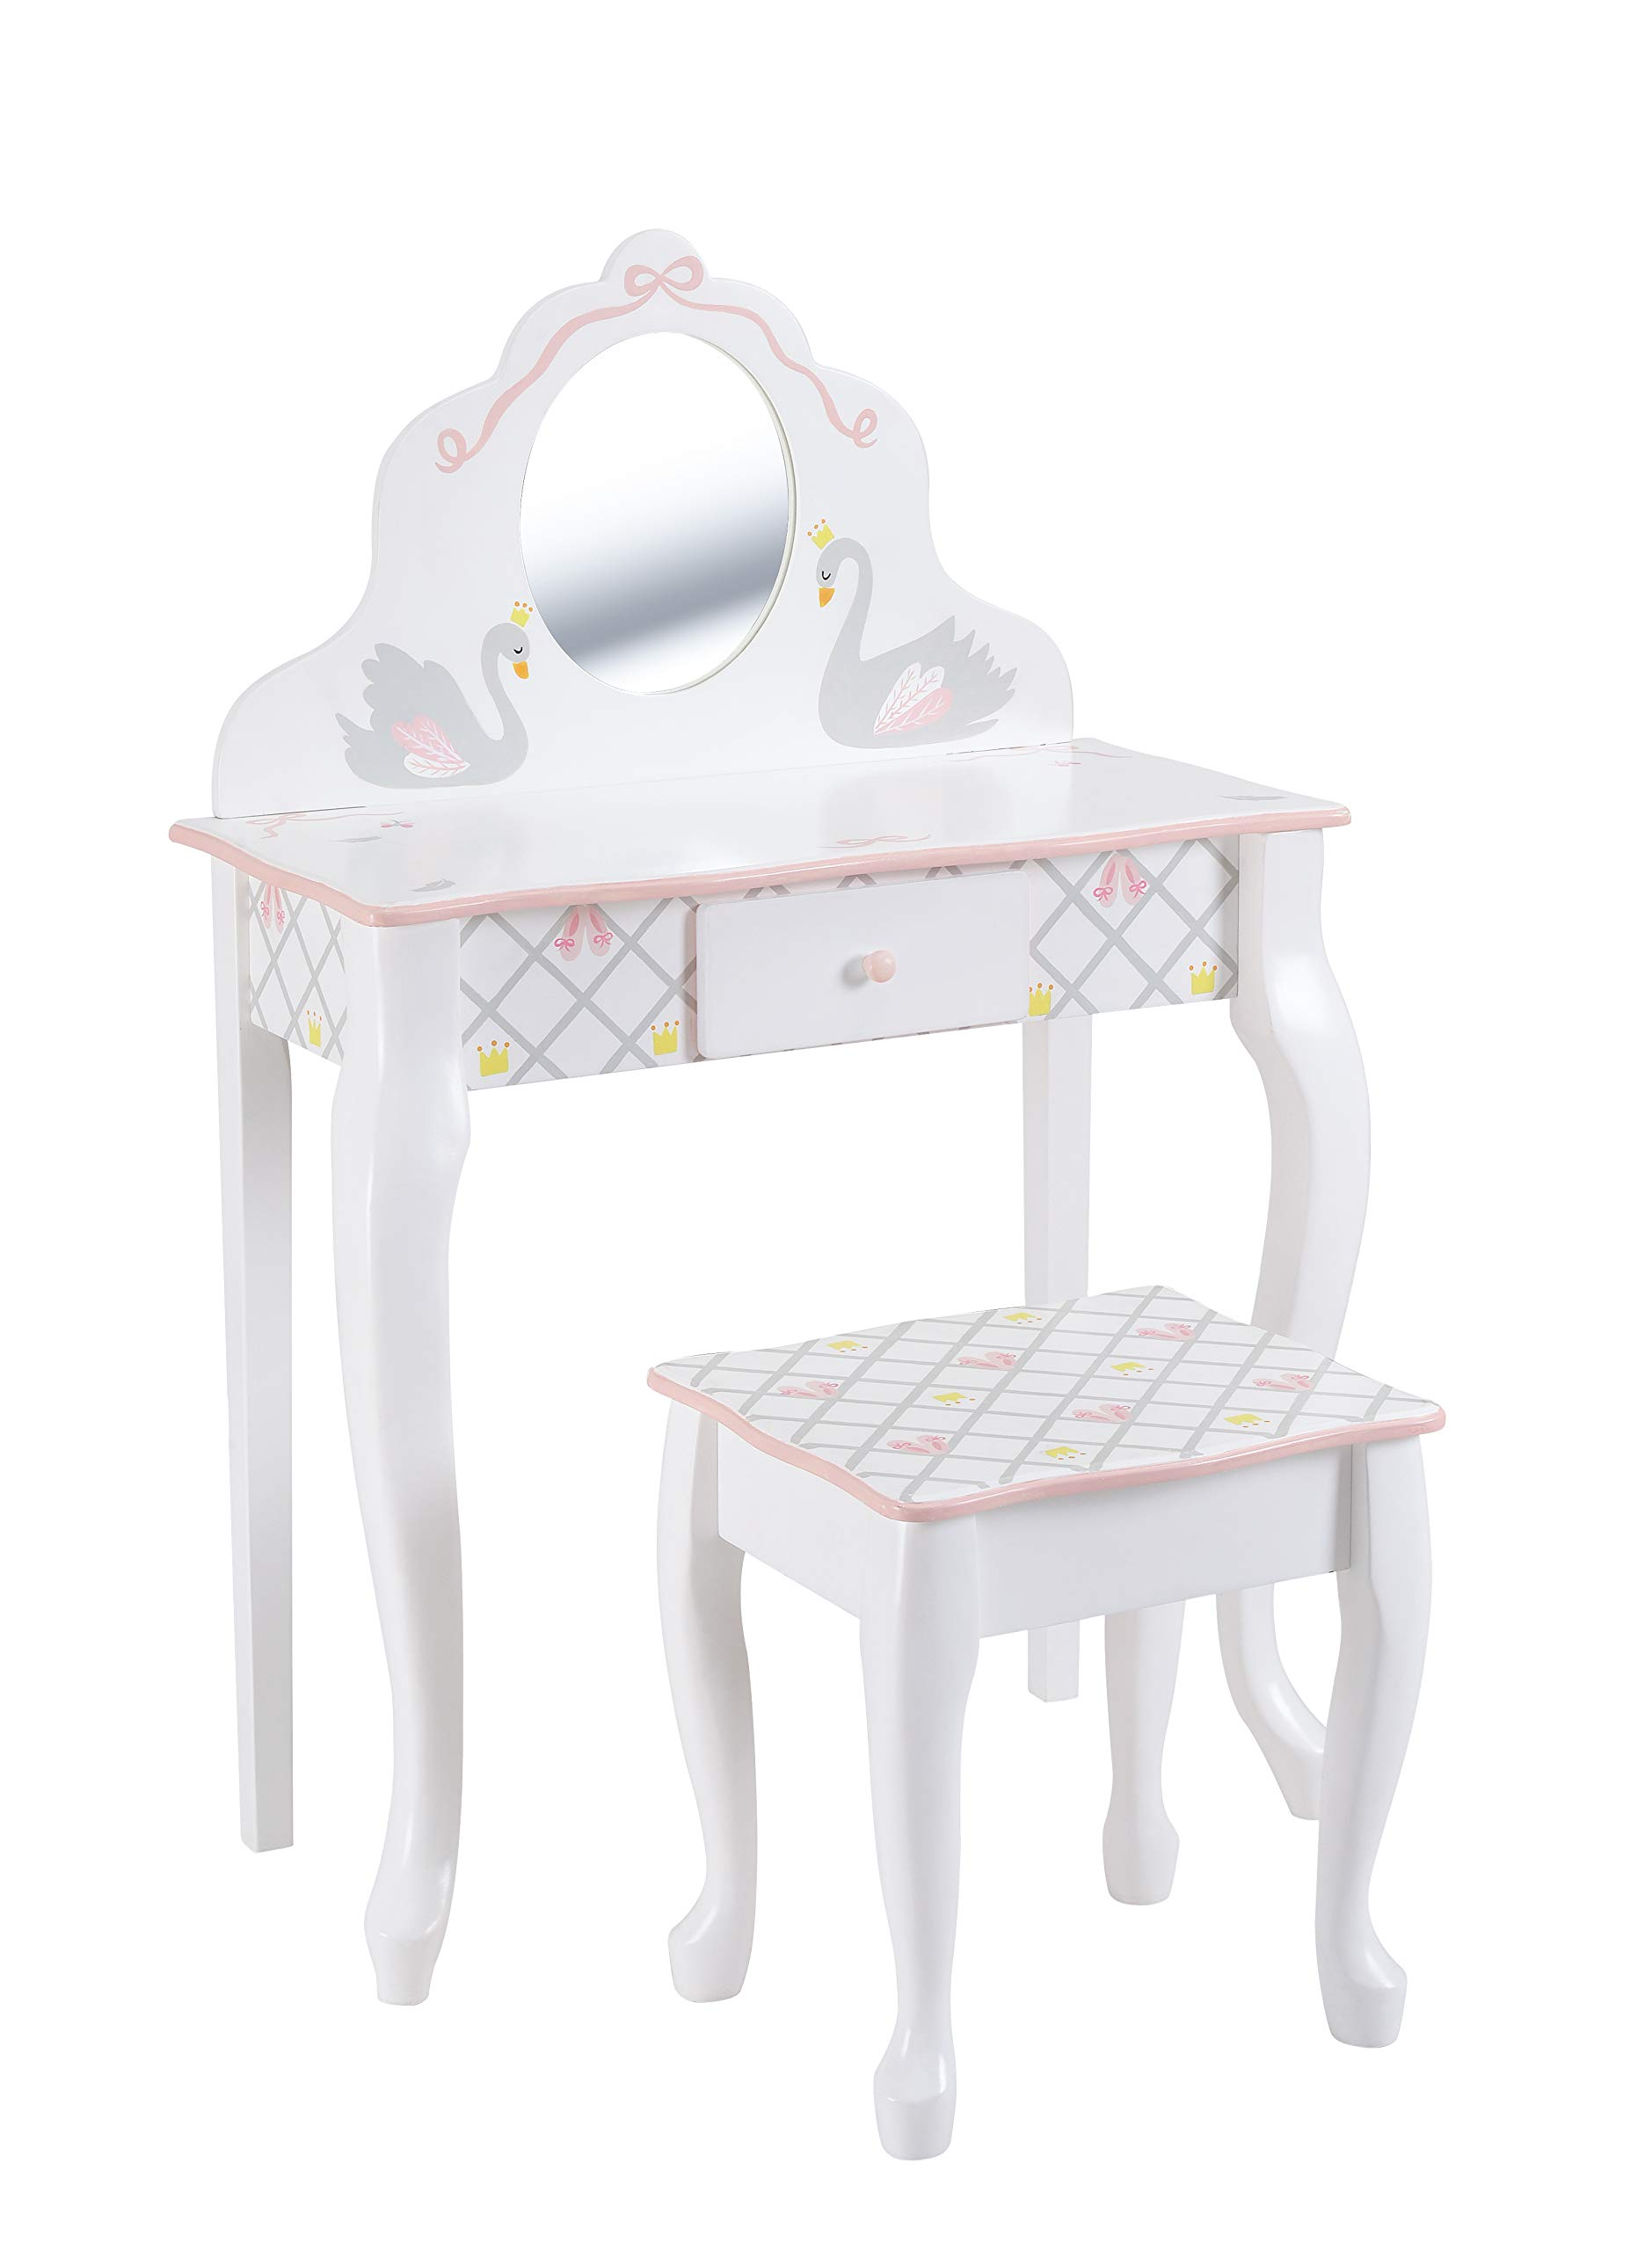 Fantasy Fields - Swan Lake Ballerina Vanity Table and Stool Set | White/Pink | Inspiring Hand Crafted & Hand Painted Details Non-Toxic, Lead Free Water-Based Paint by Fantasy Fields